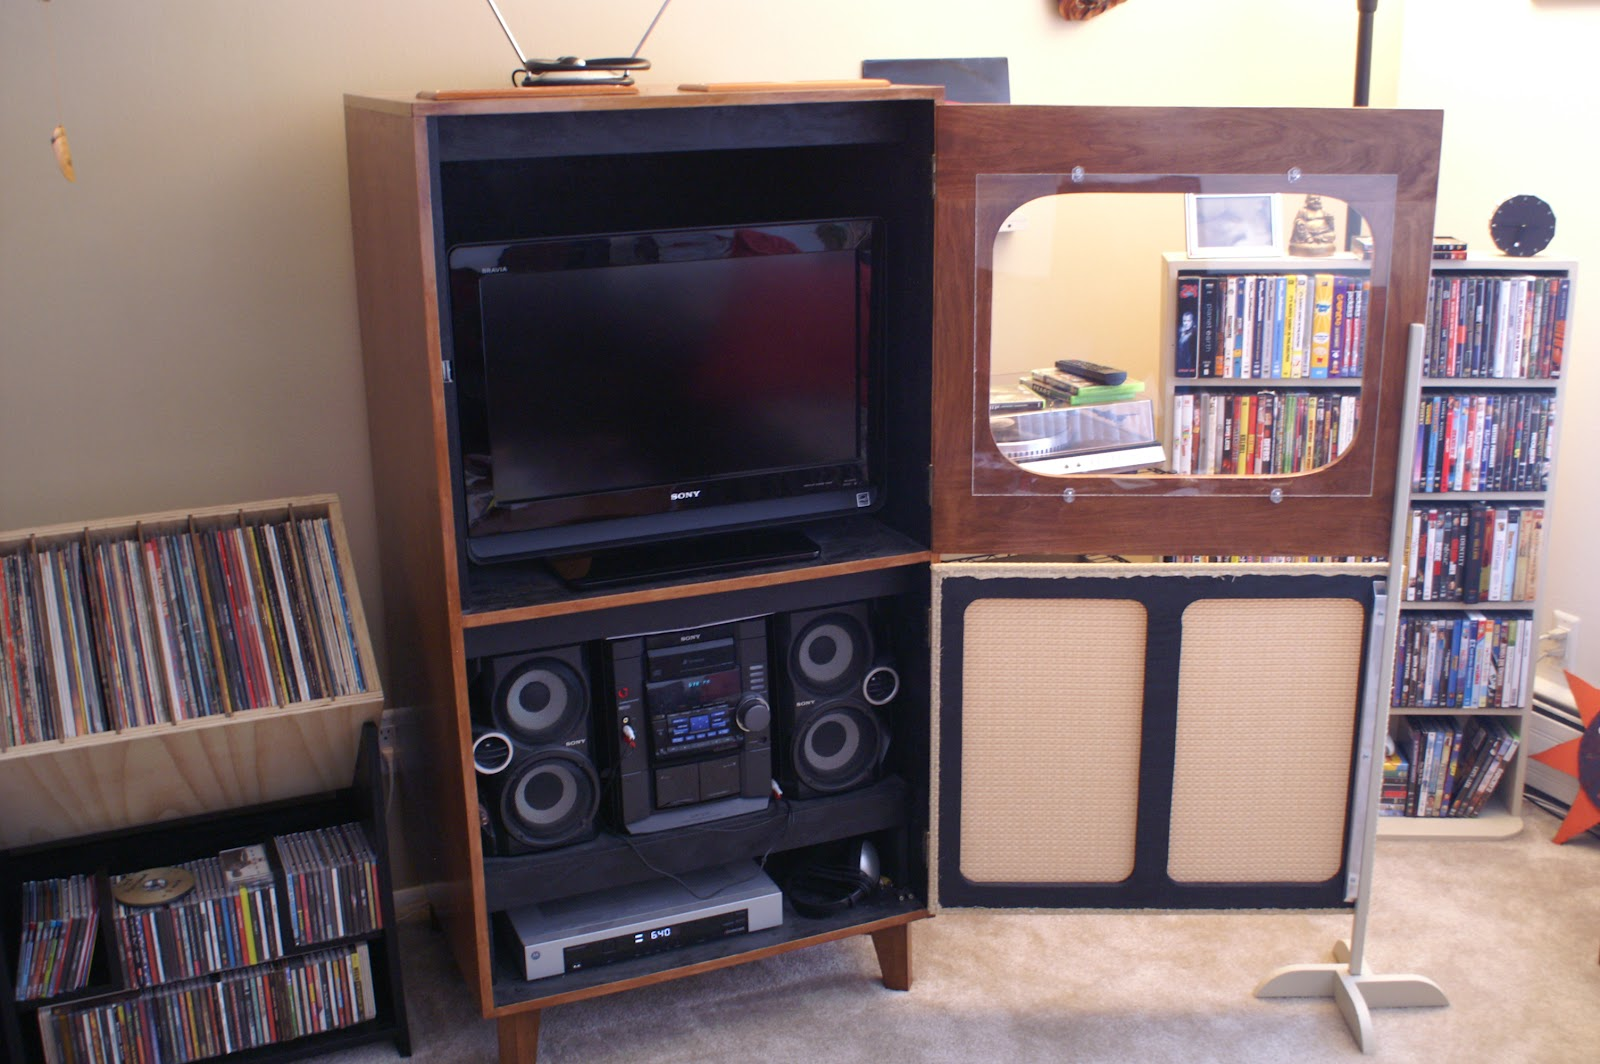 Retro Tv Cabinet Retro T V Cabinet Inspired By Make Magazine Article Project